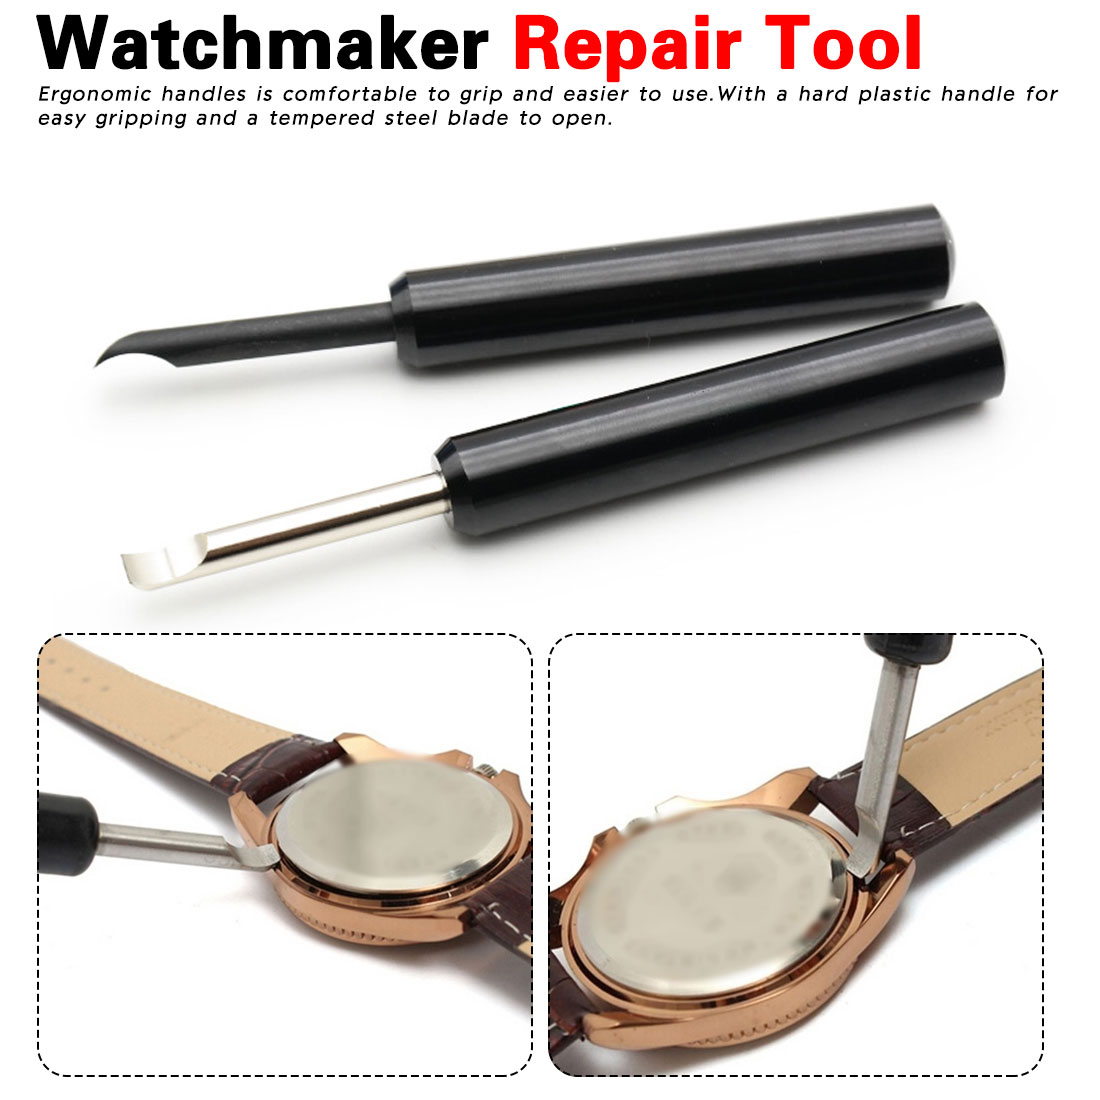 Easier To Open Watch Back CoverStraight Shank Case Opener Screw Wrench Battery Change Watchmaker Repair Tool